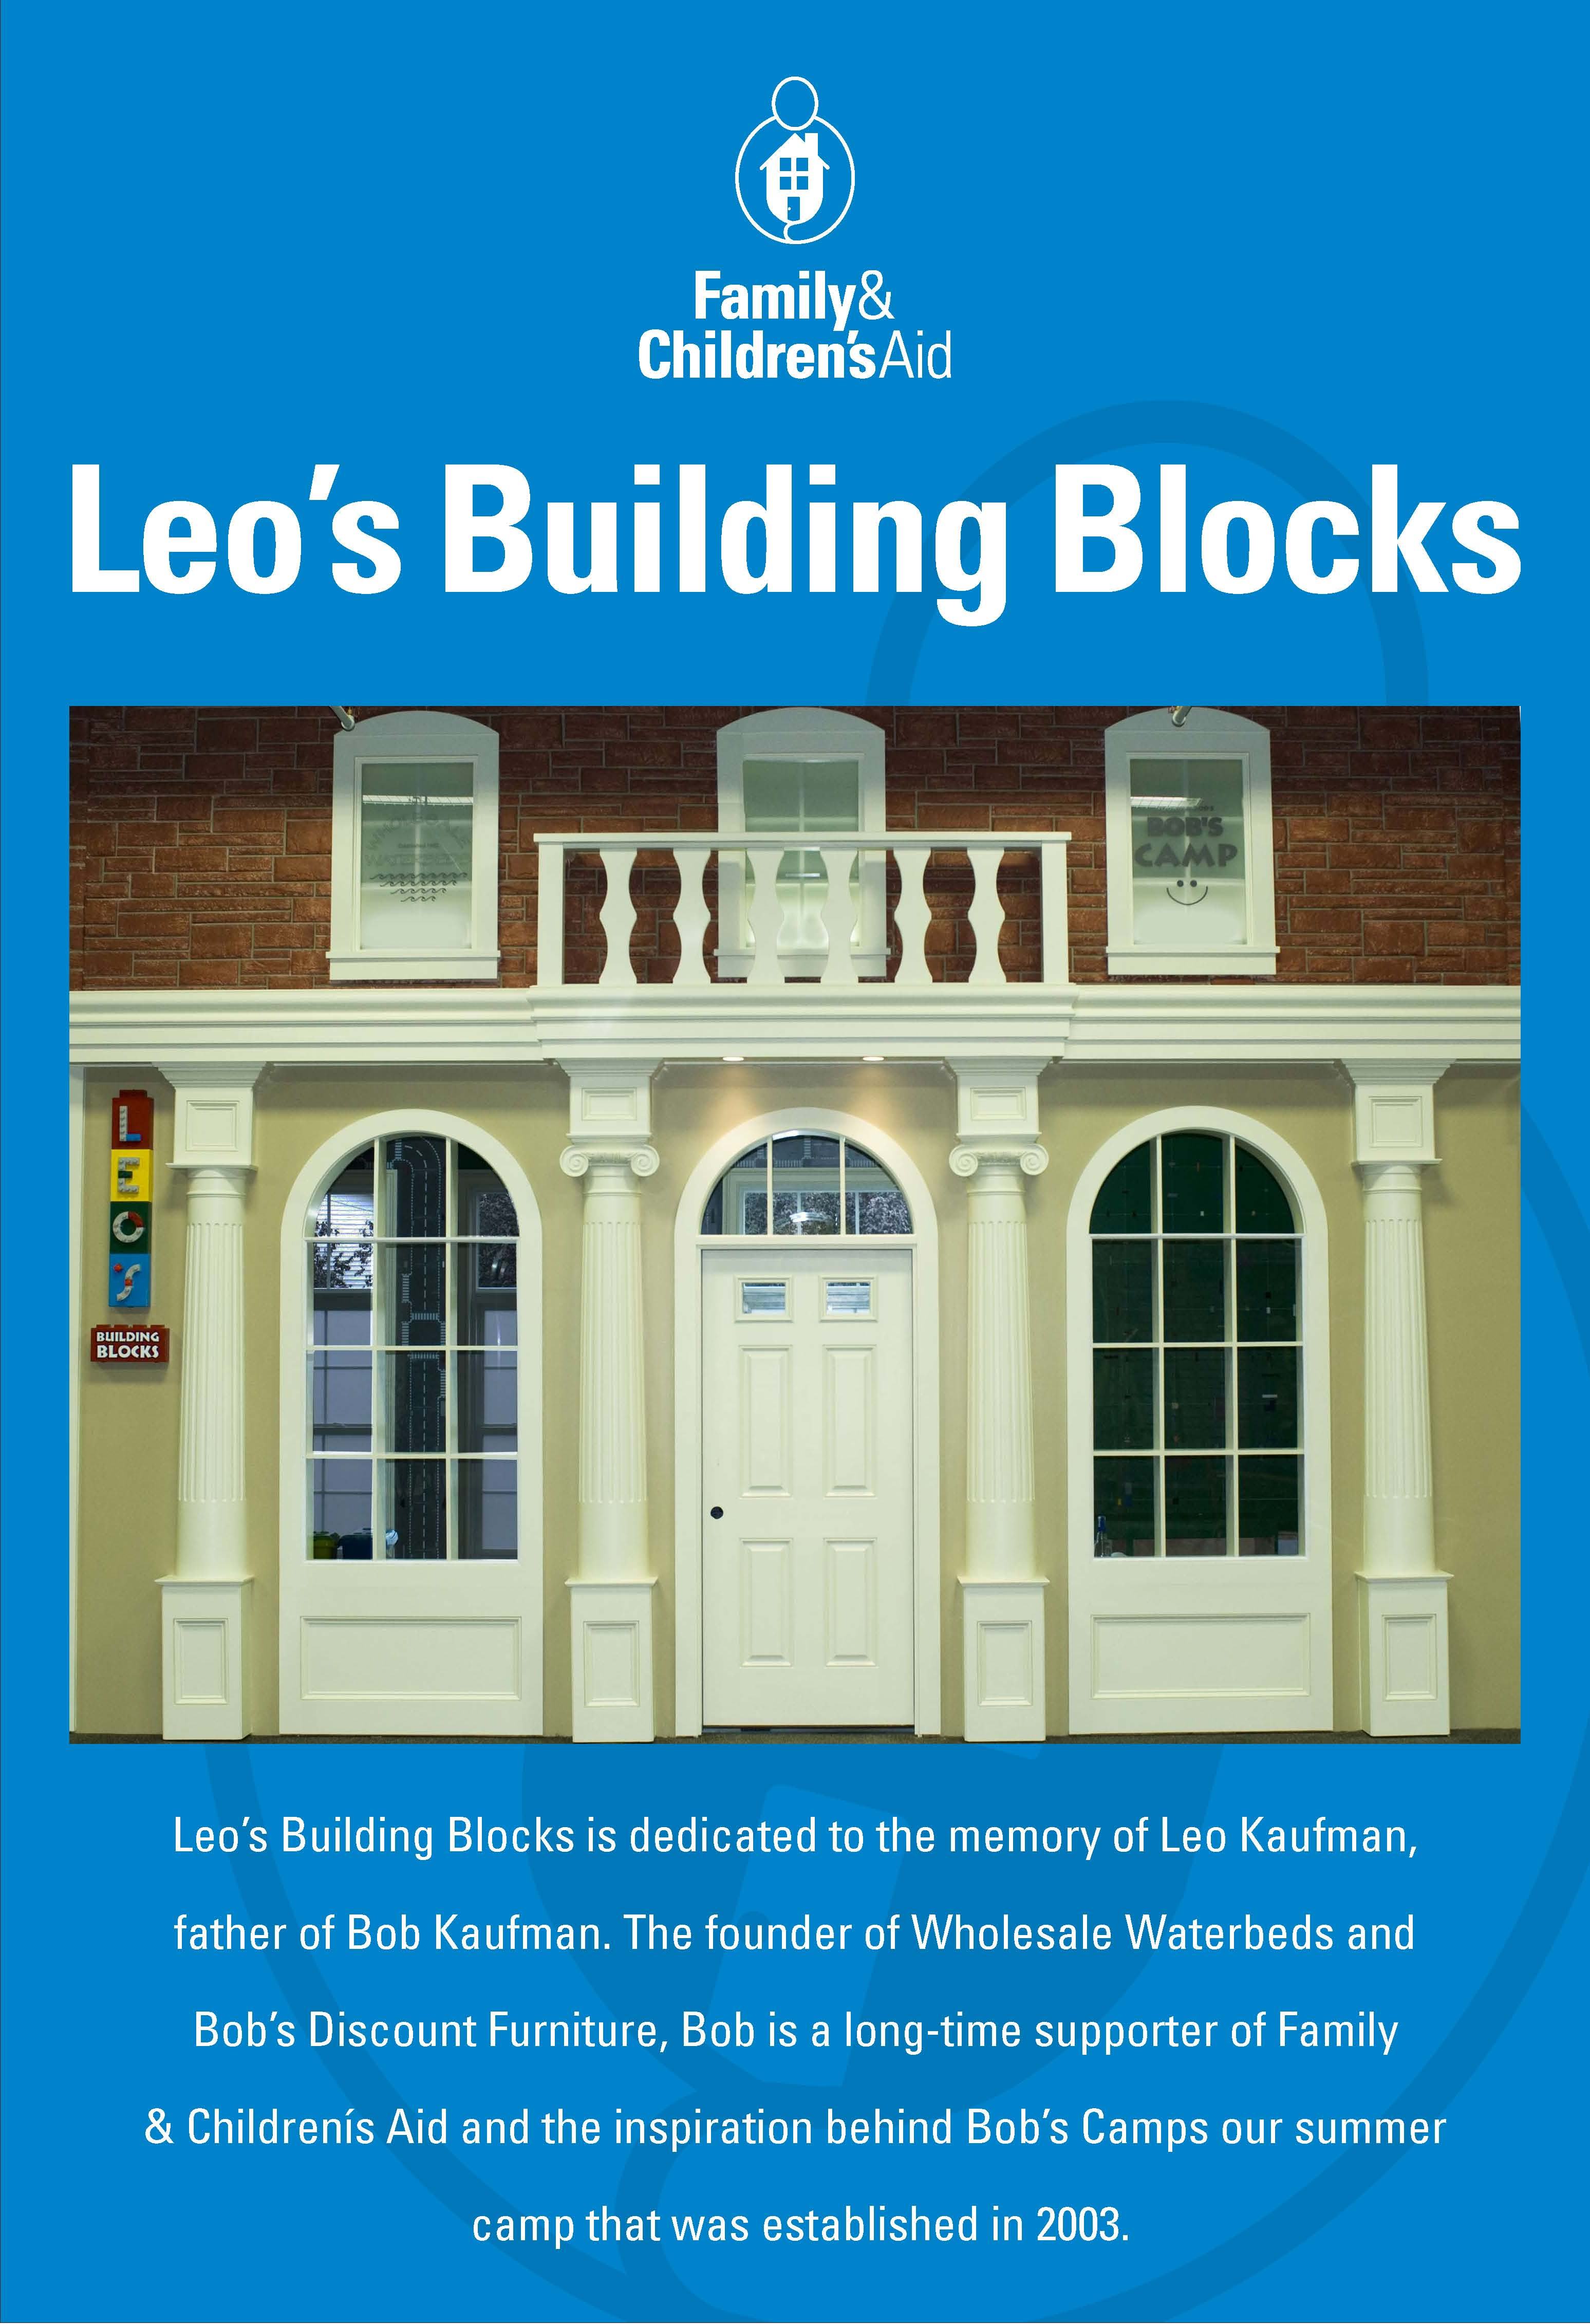 Leo's Building Blocks in Playmaker Village